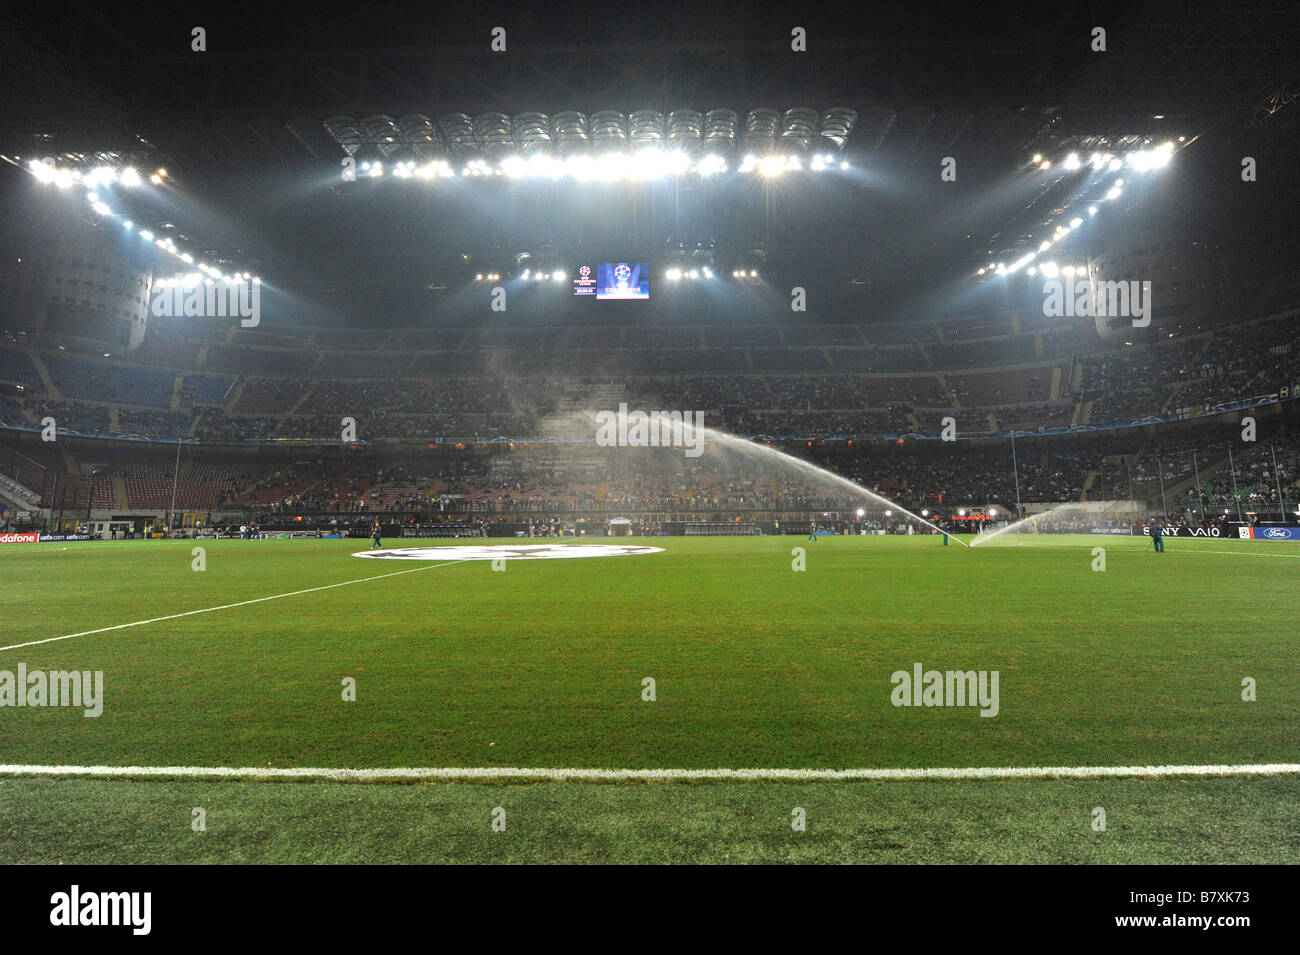 General view OCTOBER 1 2008 Football UEFA Champions League Group B first leg match between Inter Milan and Werder - Stock Image